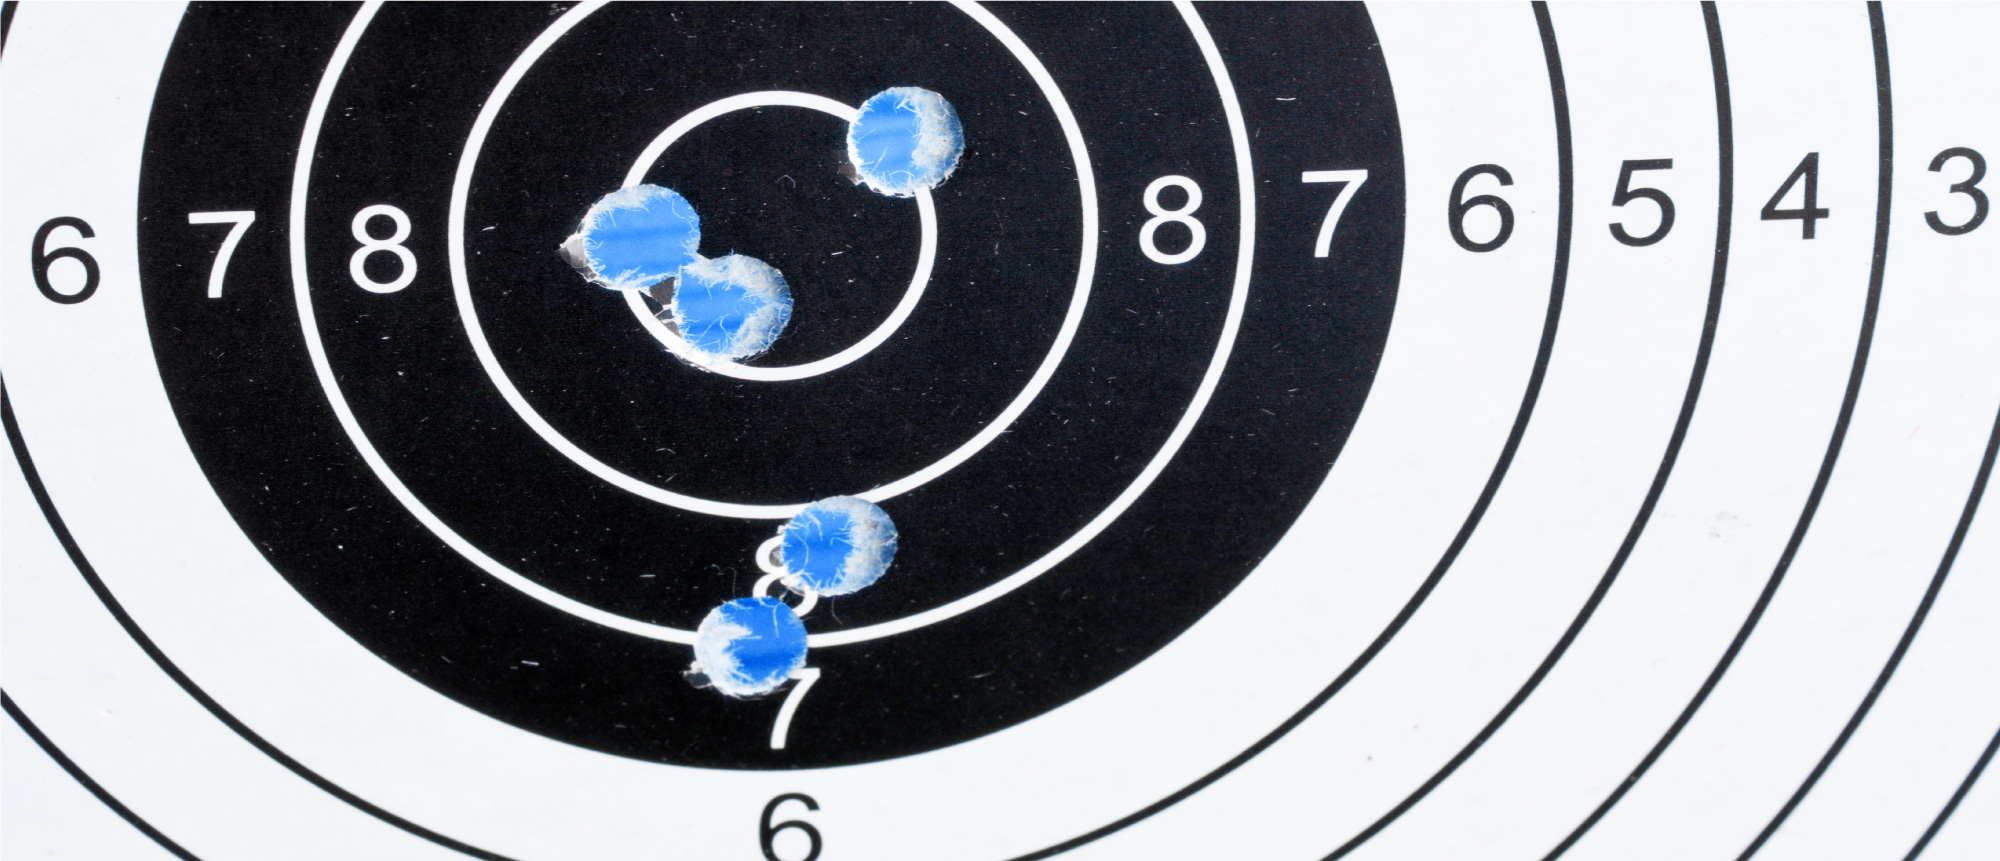 Go to best rifle scopes